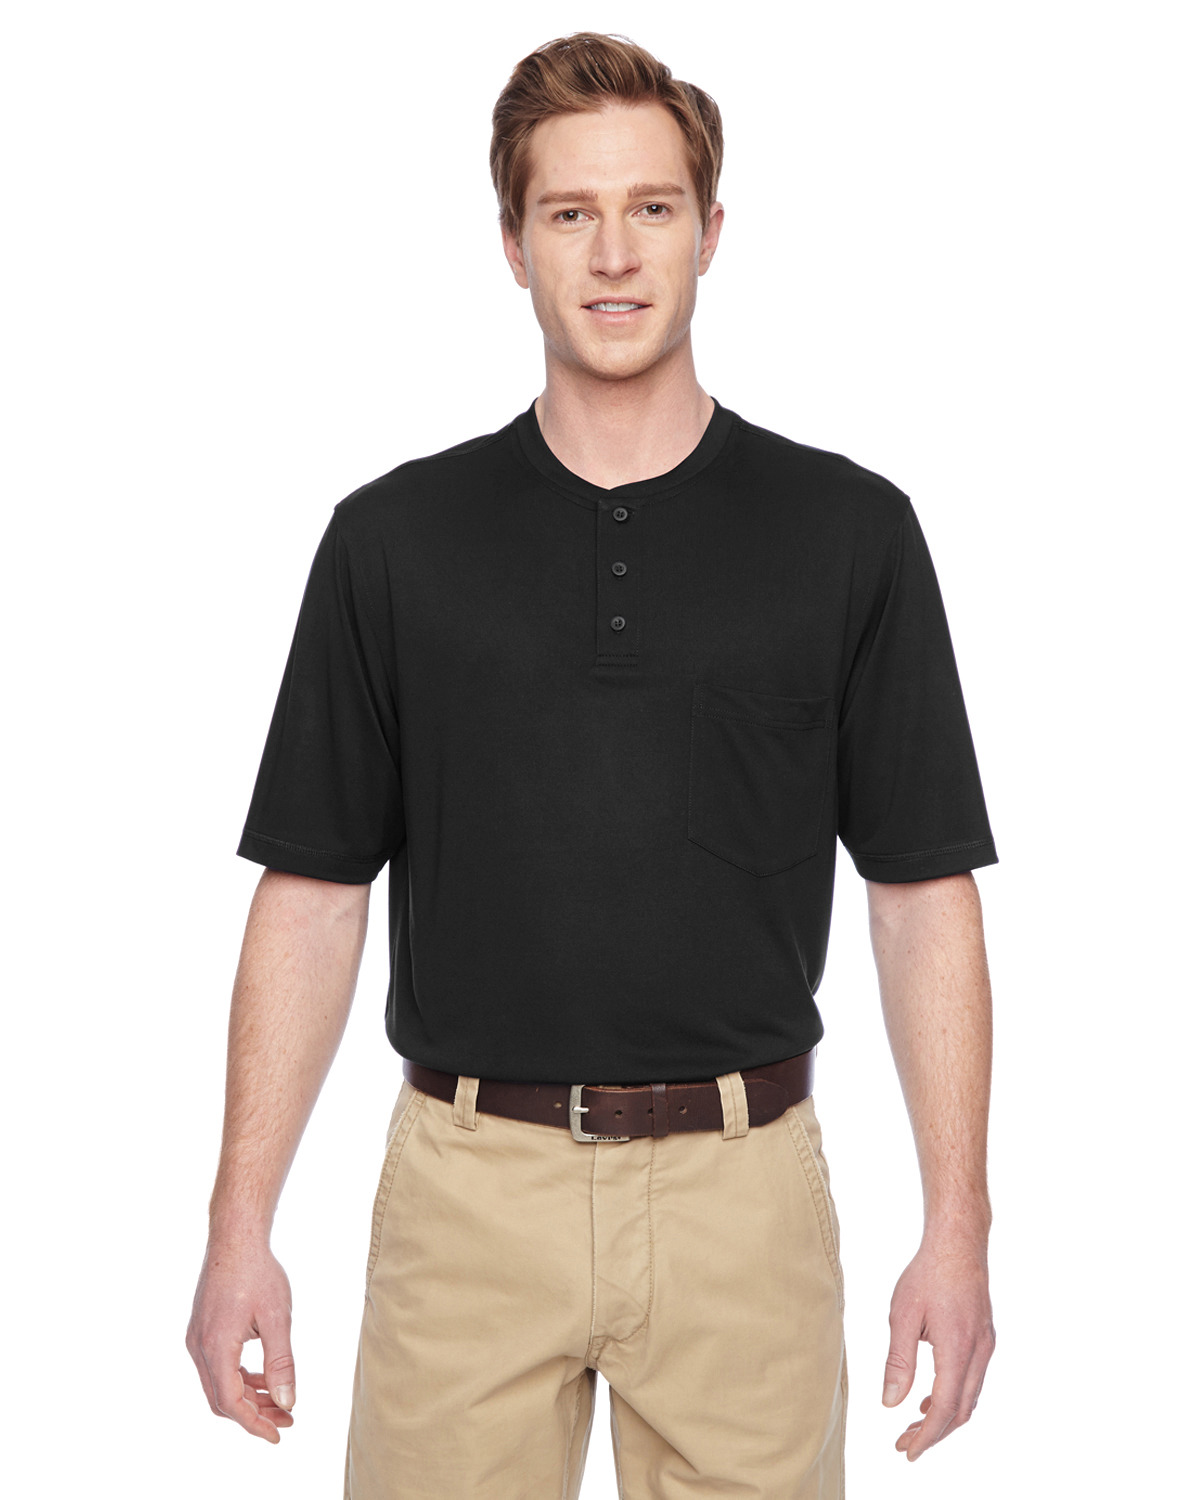 Adult Short-Sleeve Performance Henley